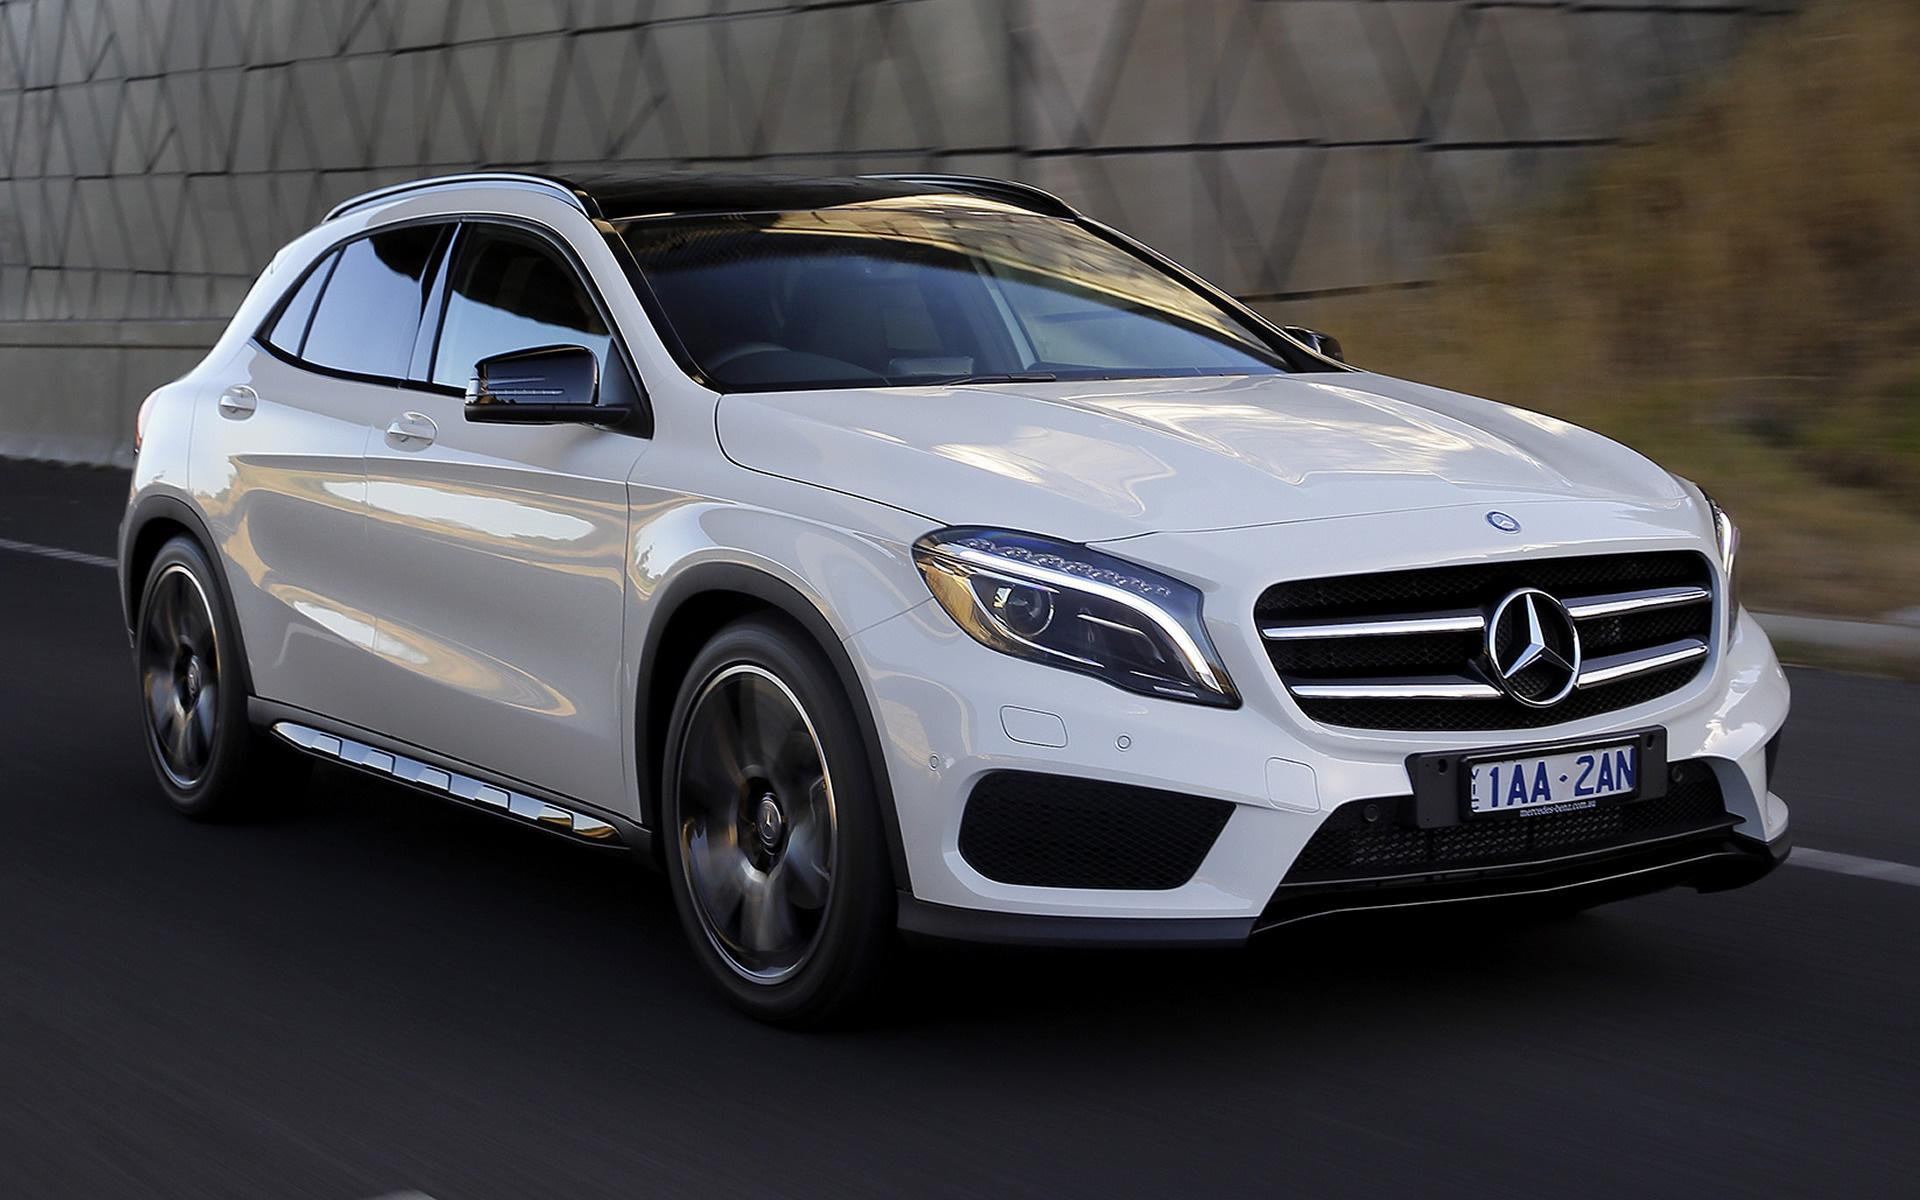 2014 Mercedes-Benz GLA-Class AMG Line (AU) - Wallpapers and HD ...